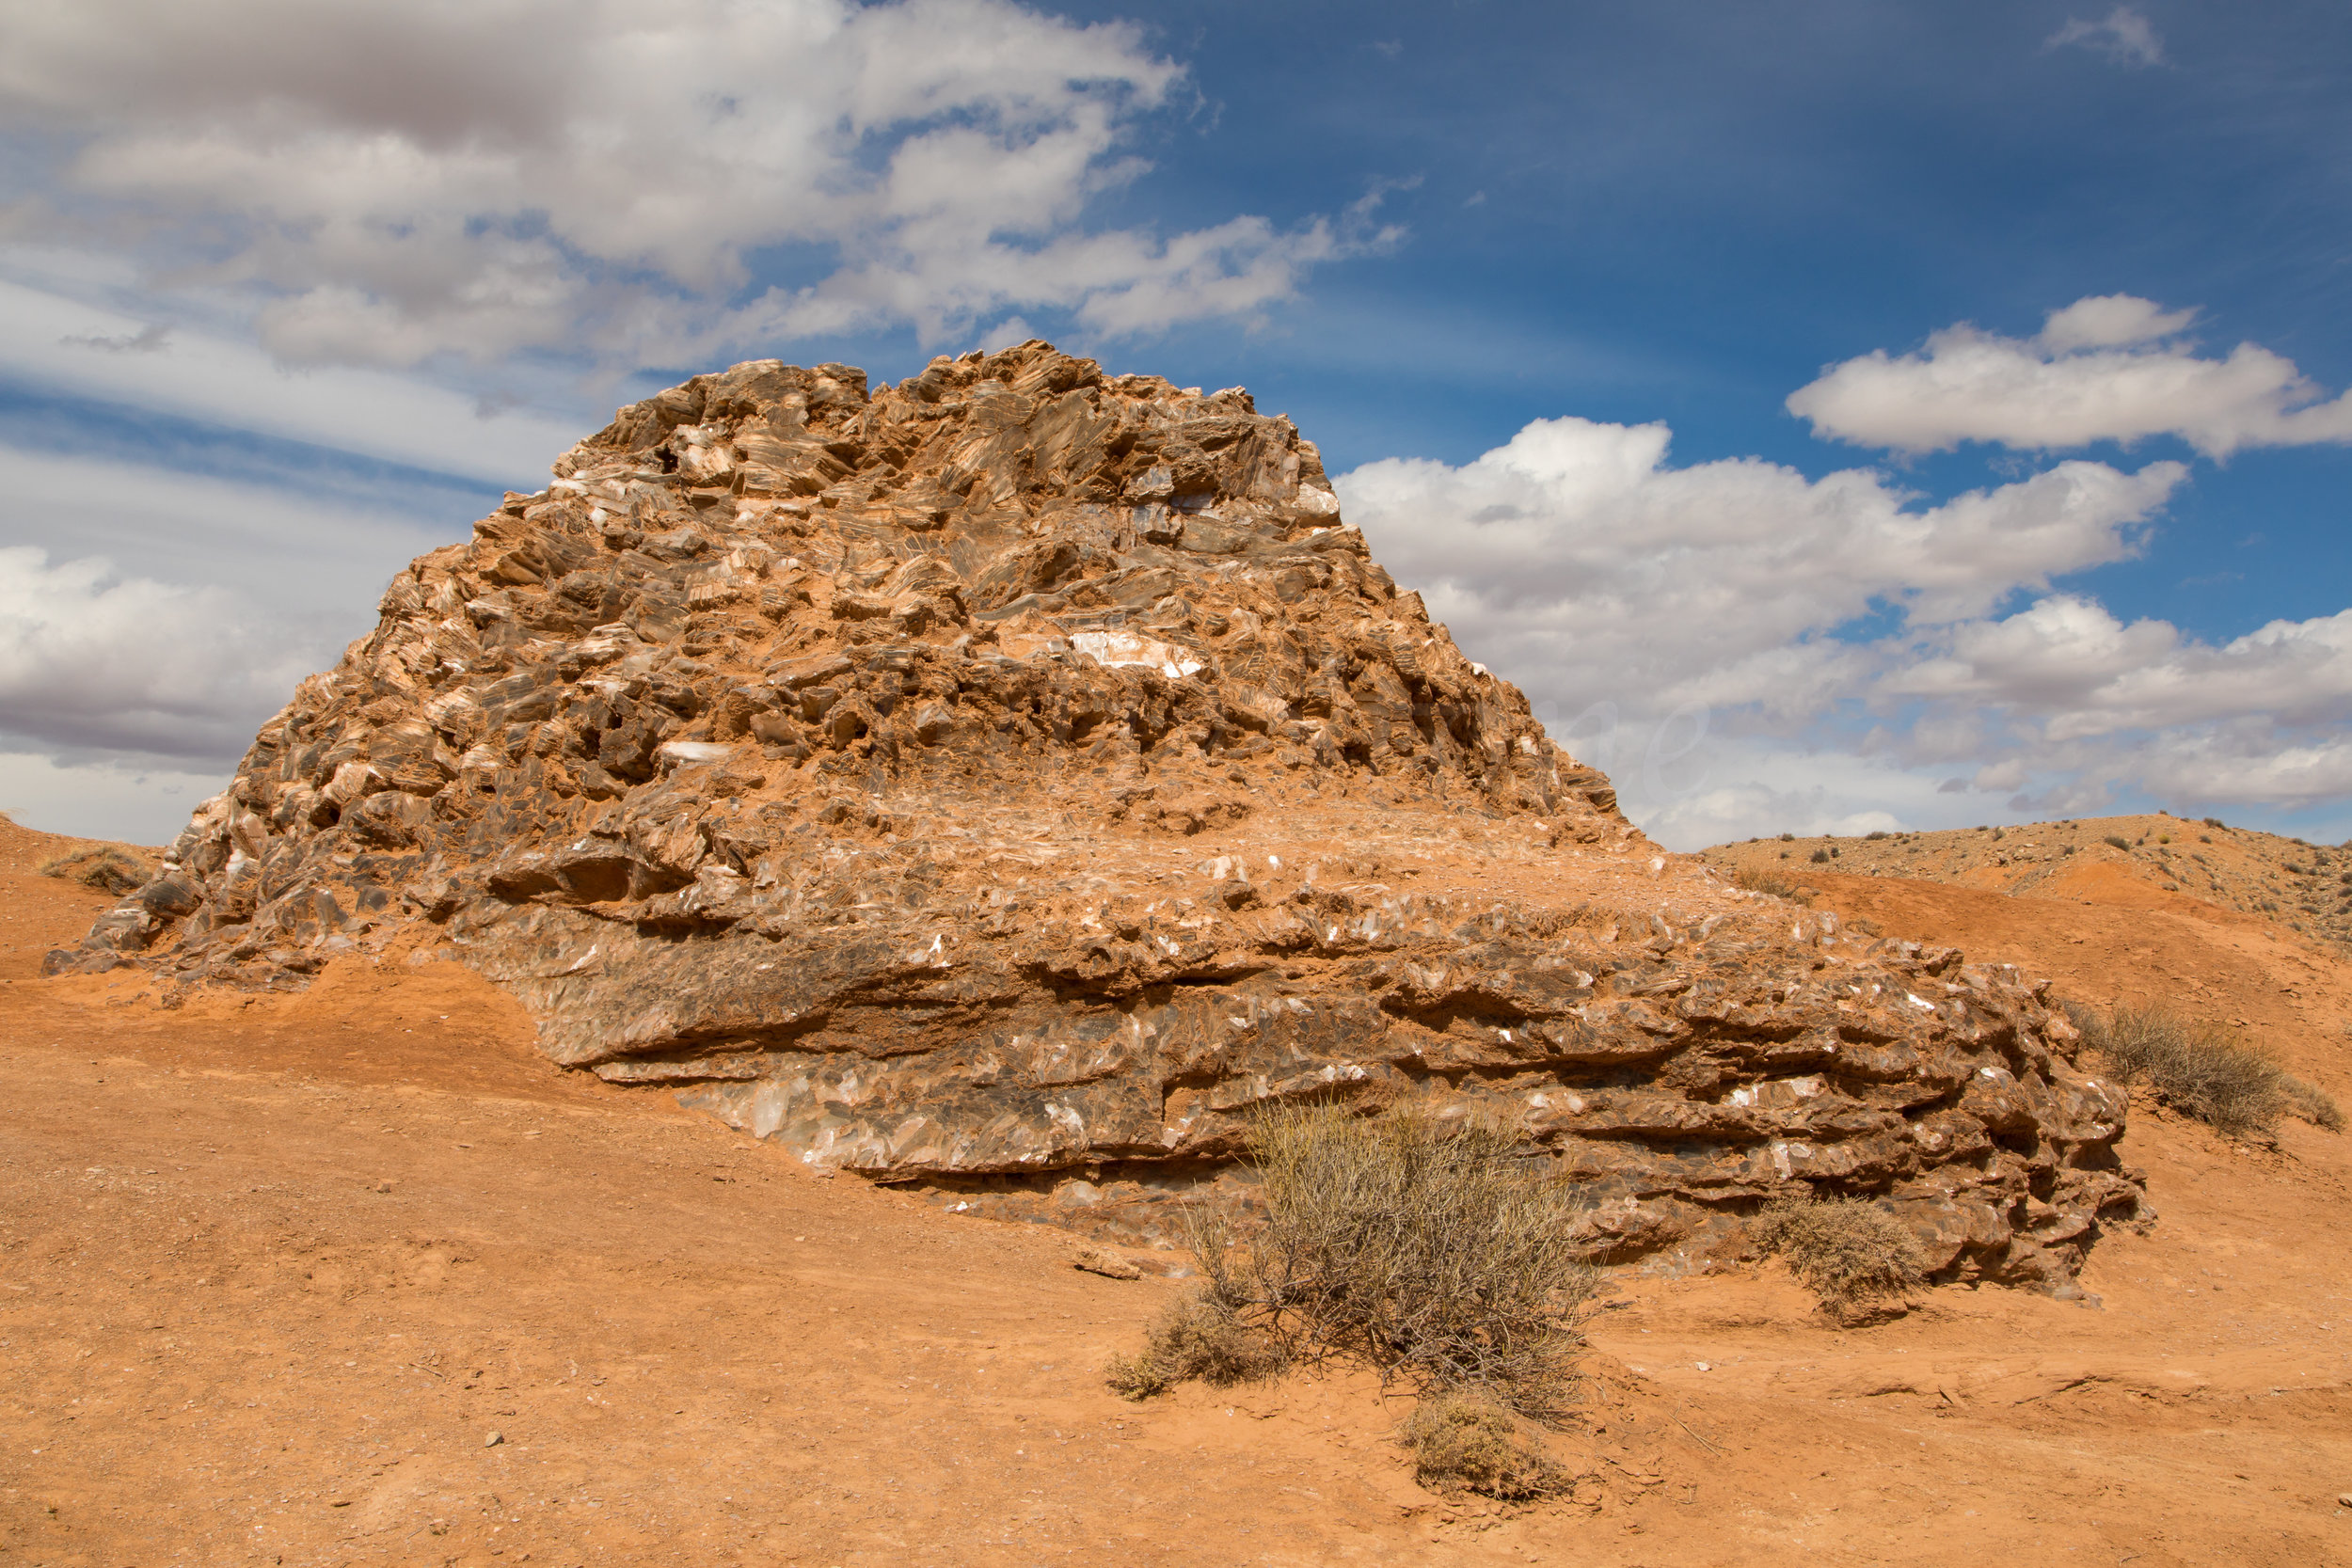 Capitol Reef National Park, Image # 2113